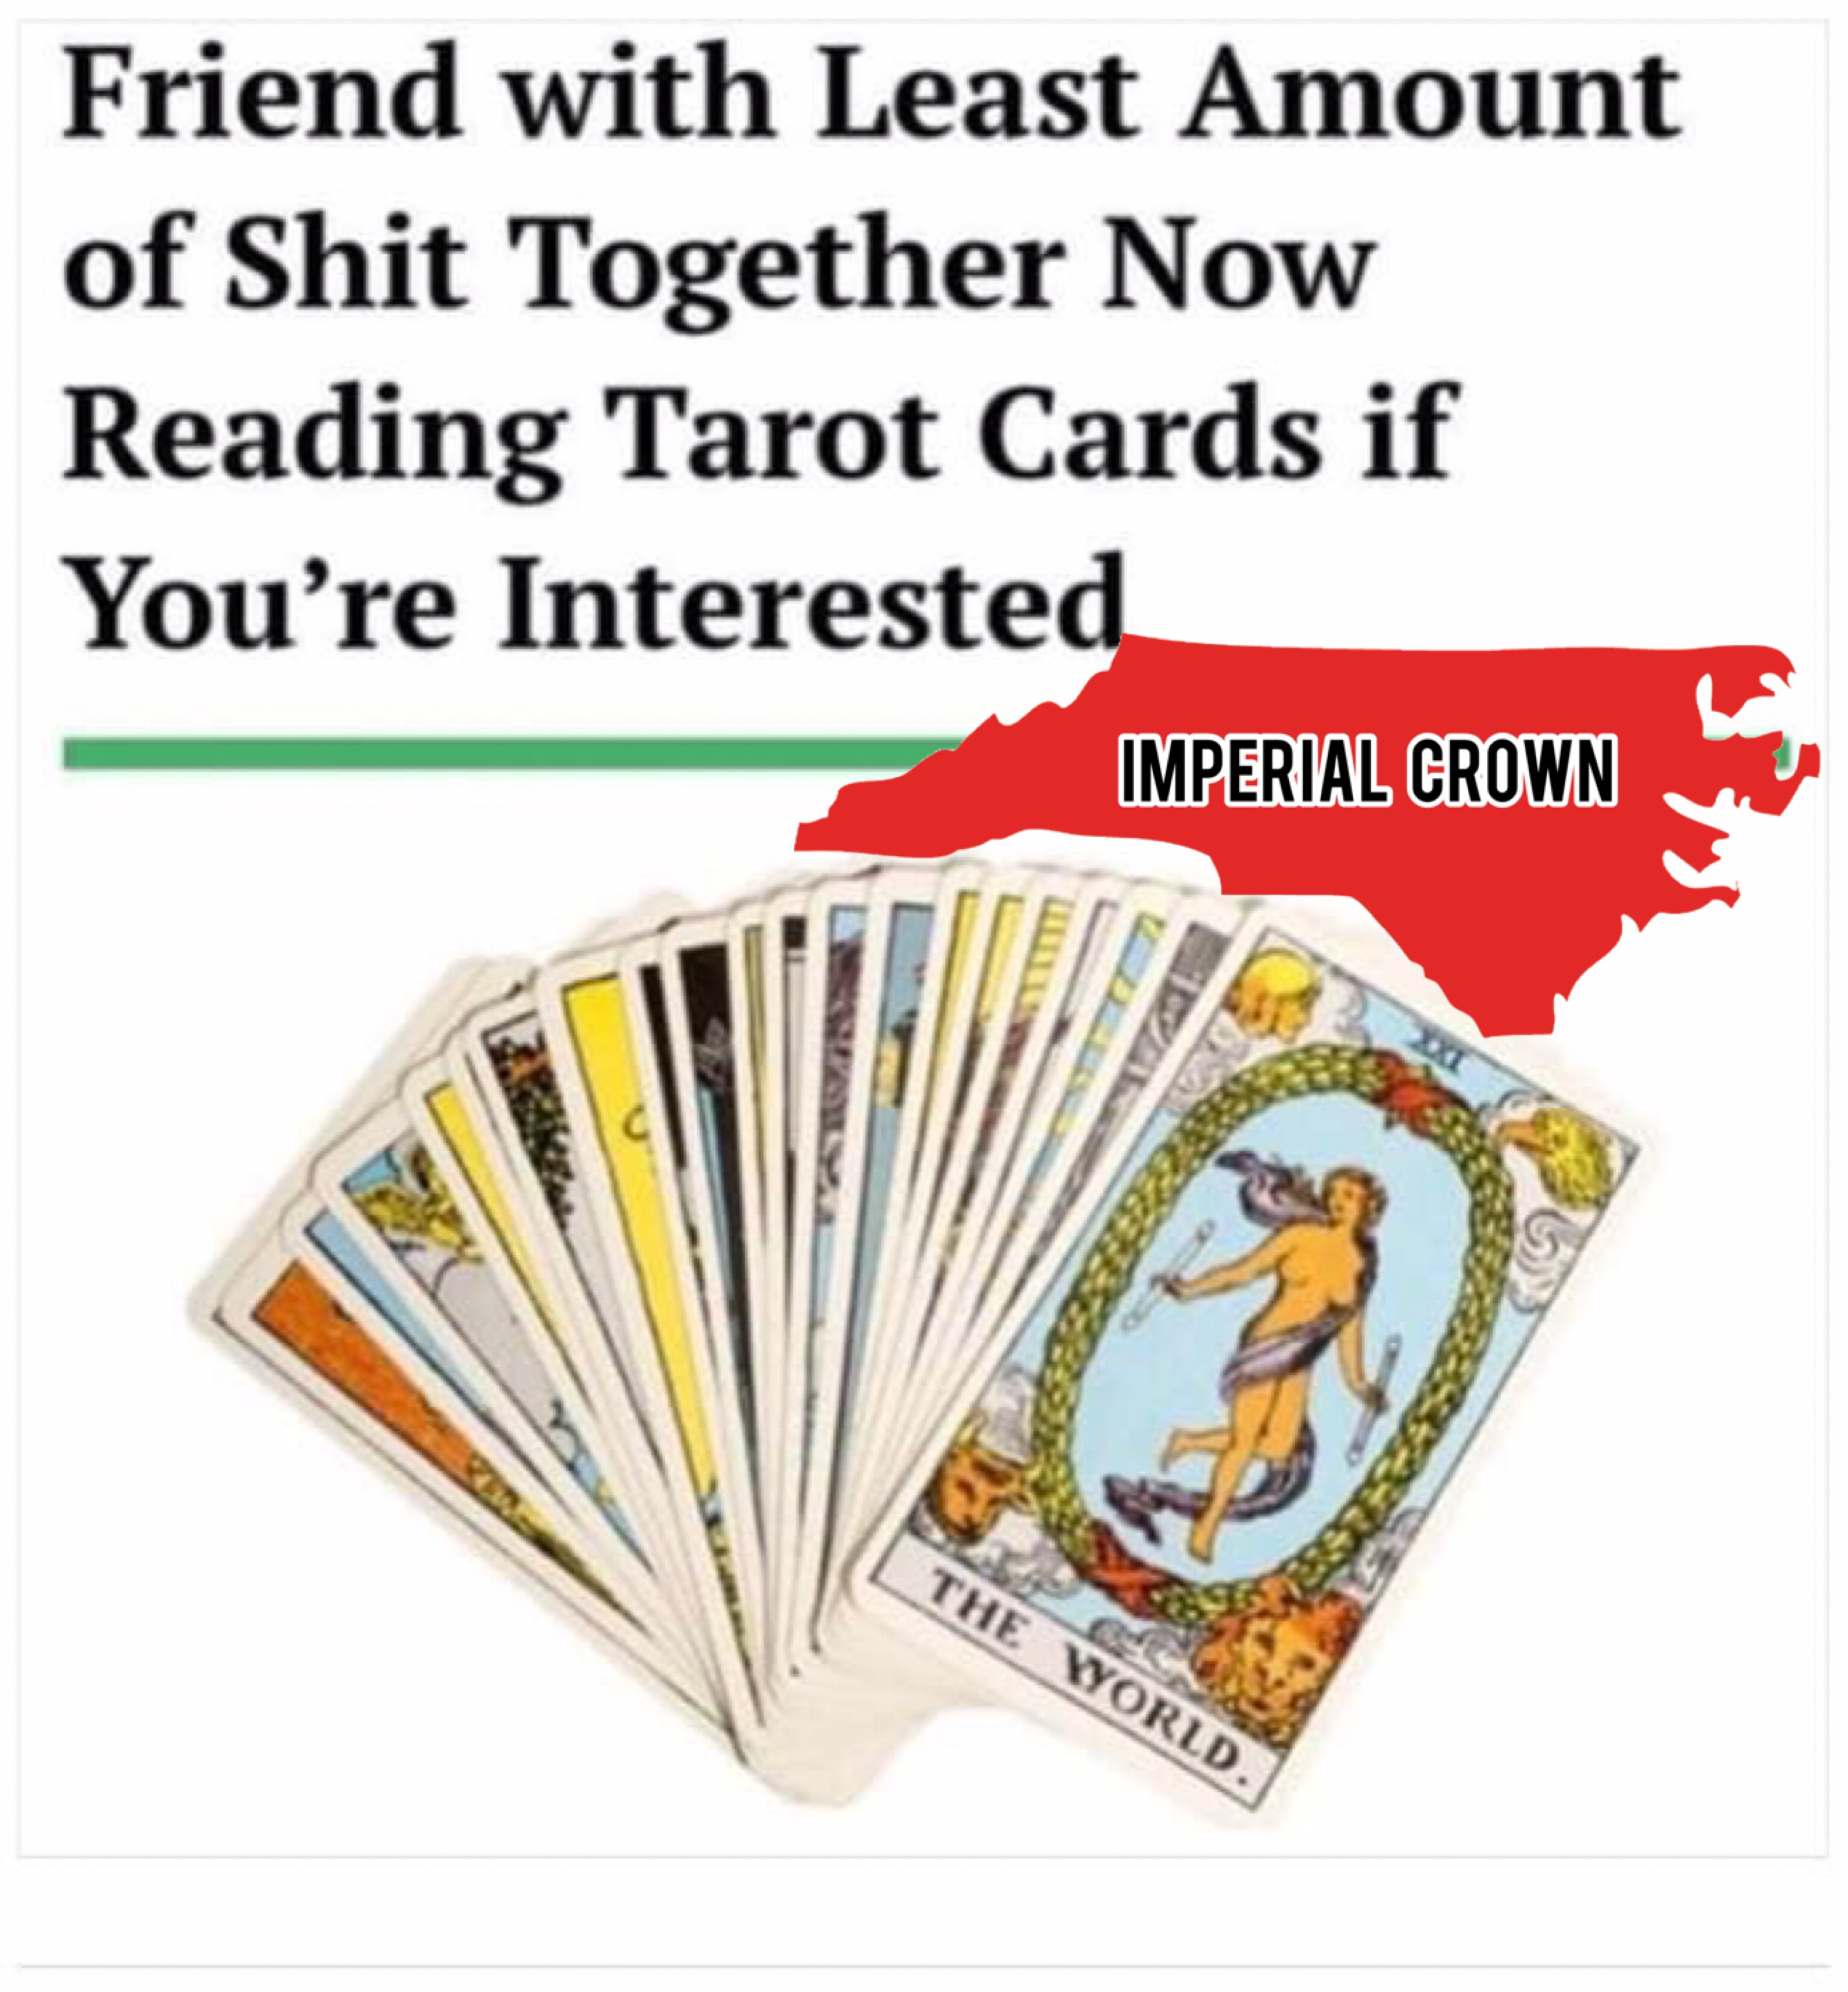 Friends with least amount of shit together now reading tarot cards….